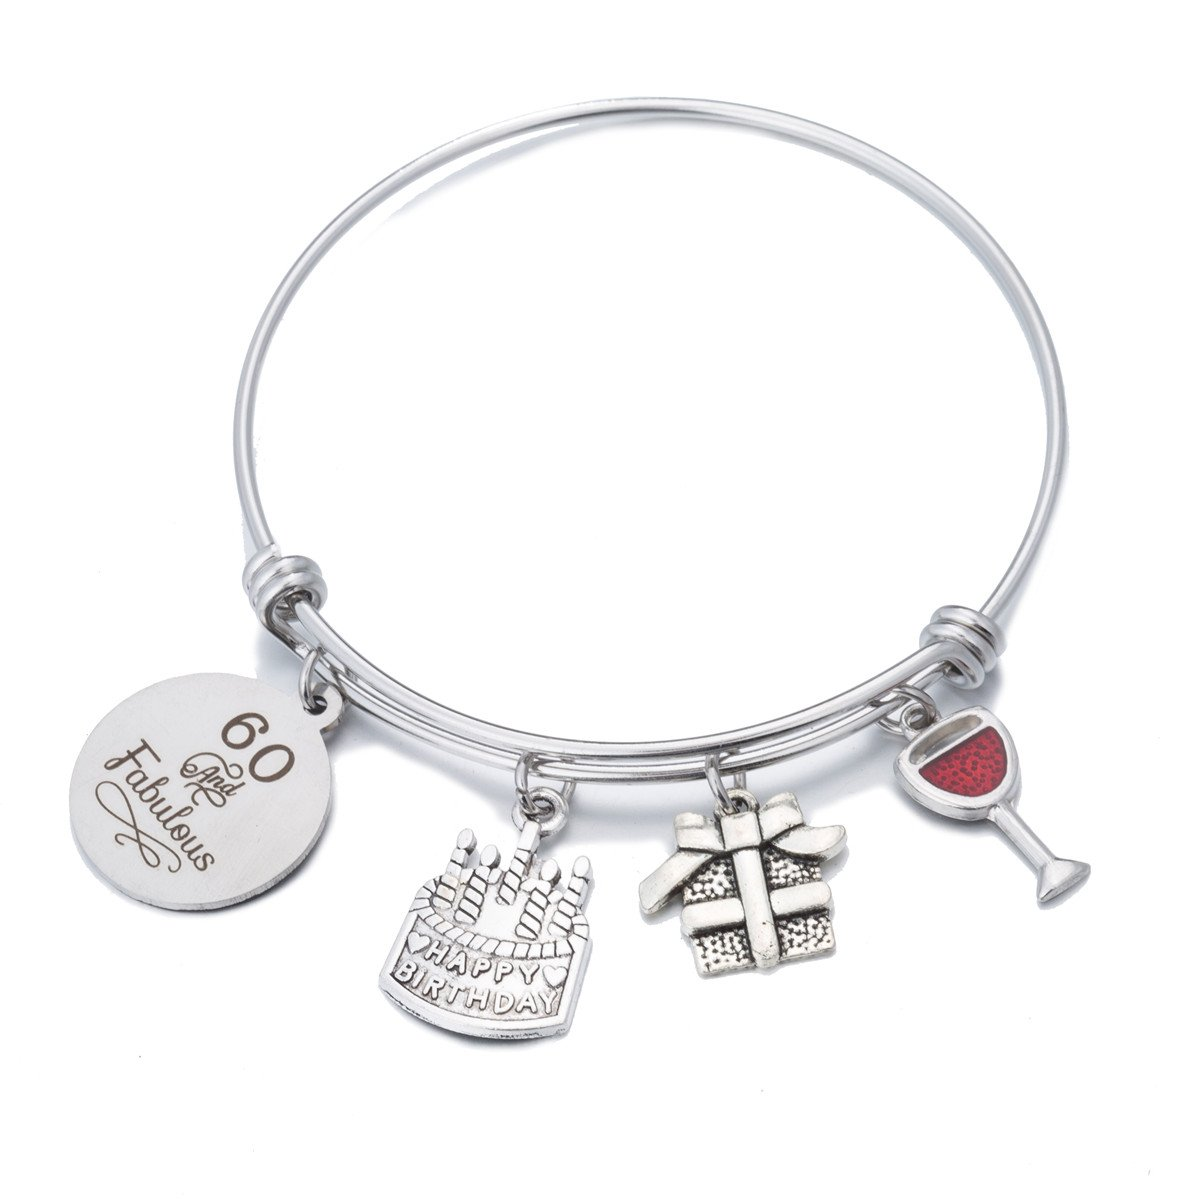 FCHEN Birthday Gifts Bangle for Women Expandable Live Laugh Love Charms Bracelets 12th 13th 16th 18th 21st 30th 39th 40th 50th 60th